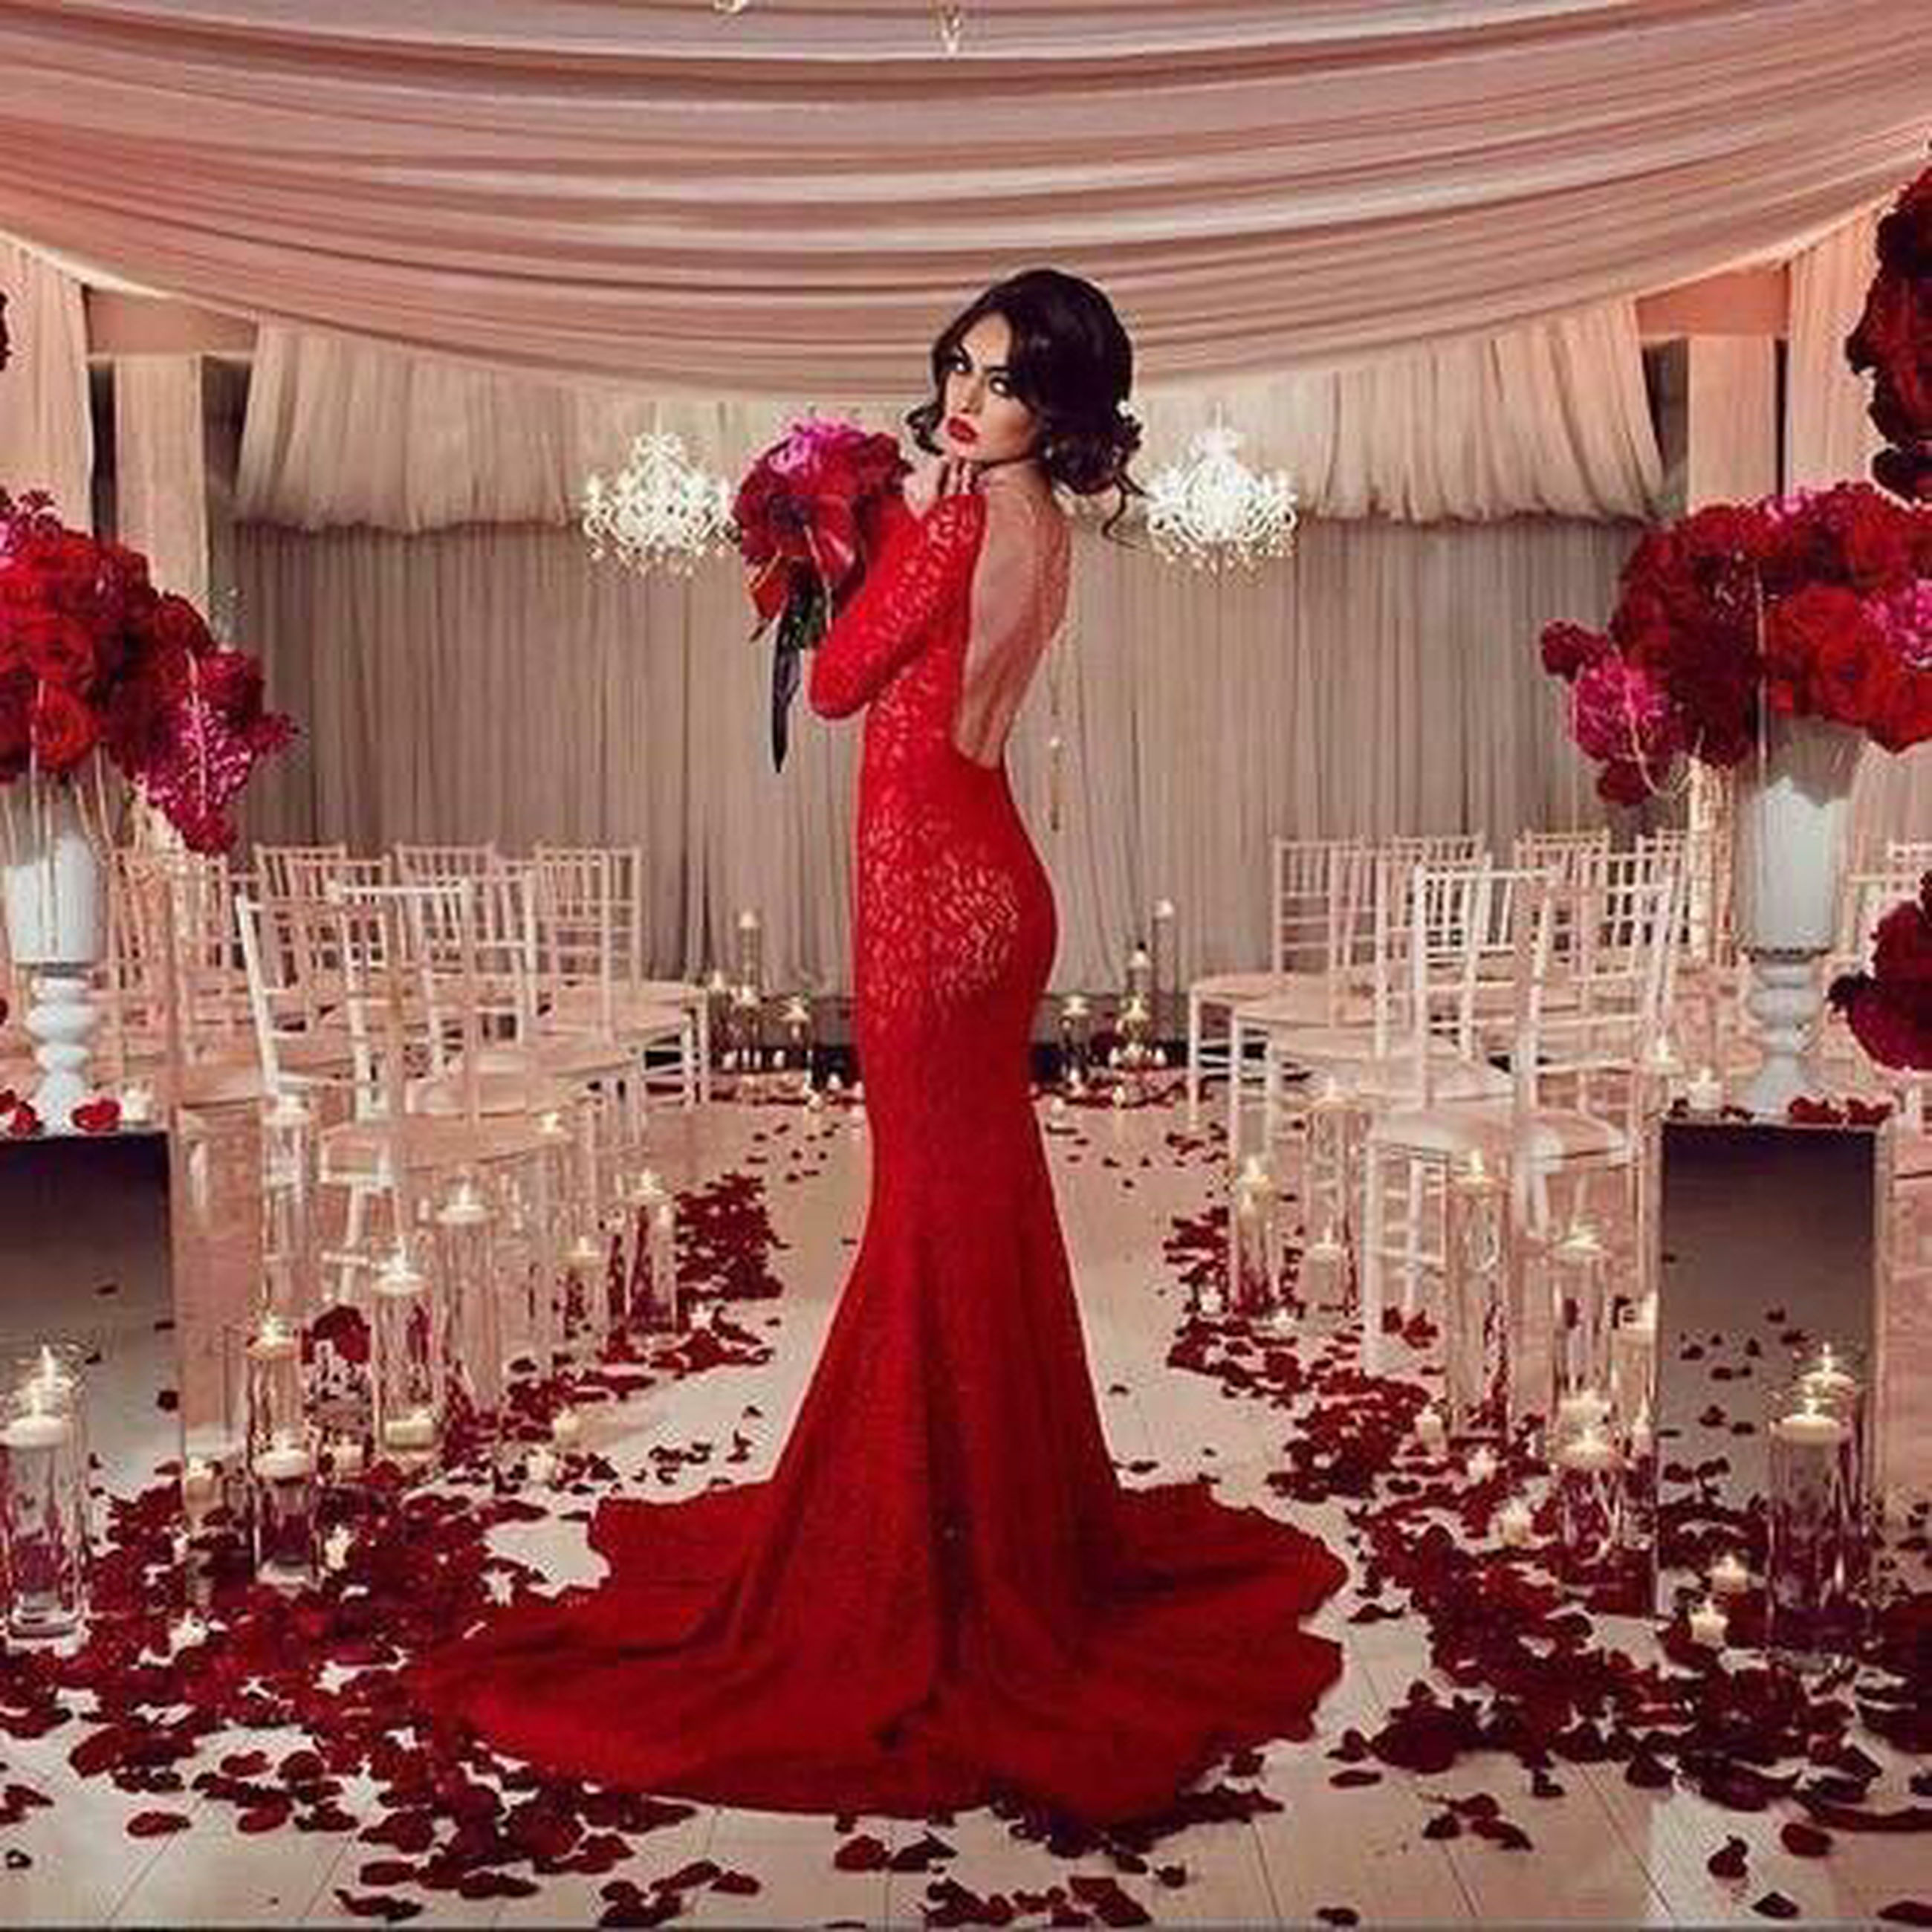 lifestyles, indoors, young women, young adult, leisure activity, dress, standing, traditional clothing, casual clothing, person, flower, red, celebration, built structure, full length, architecture